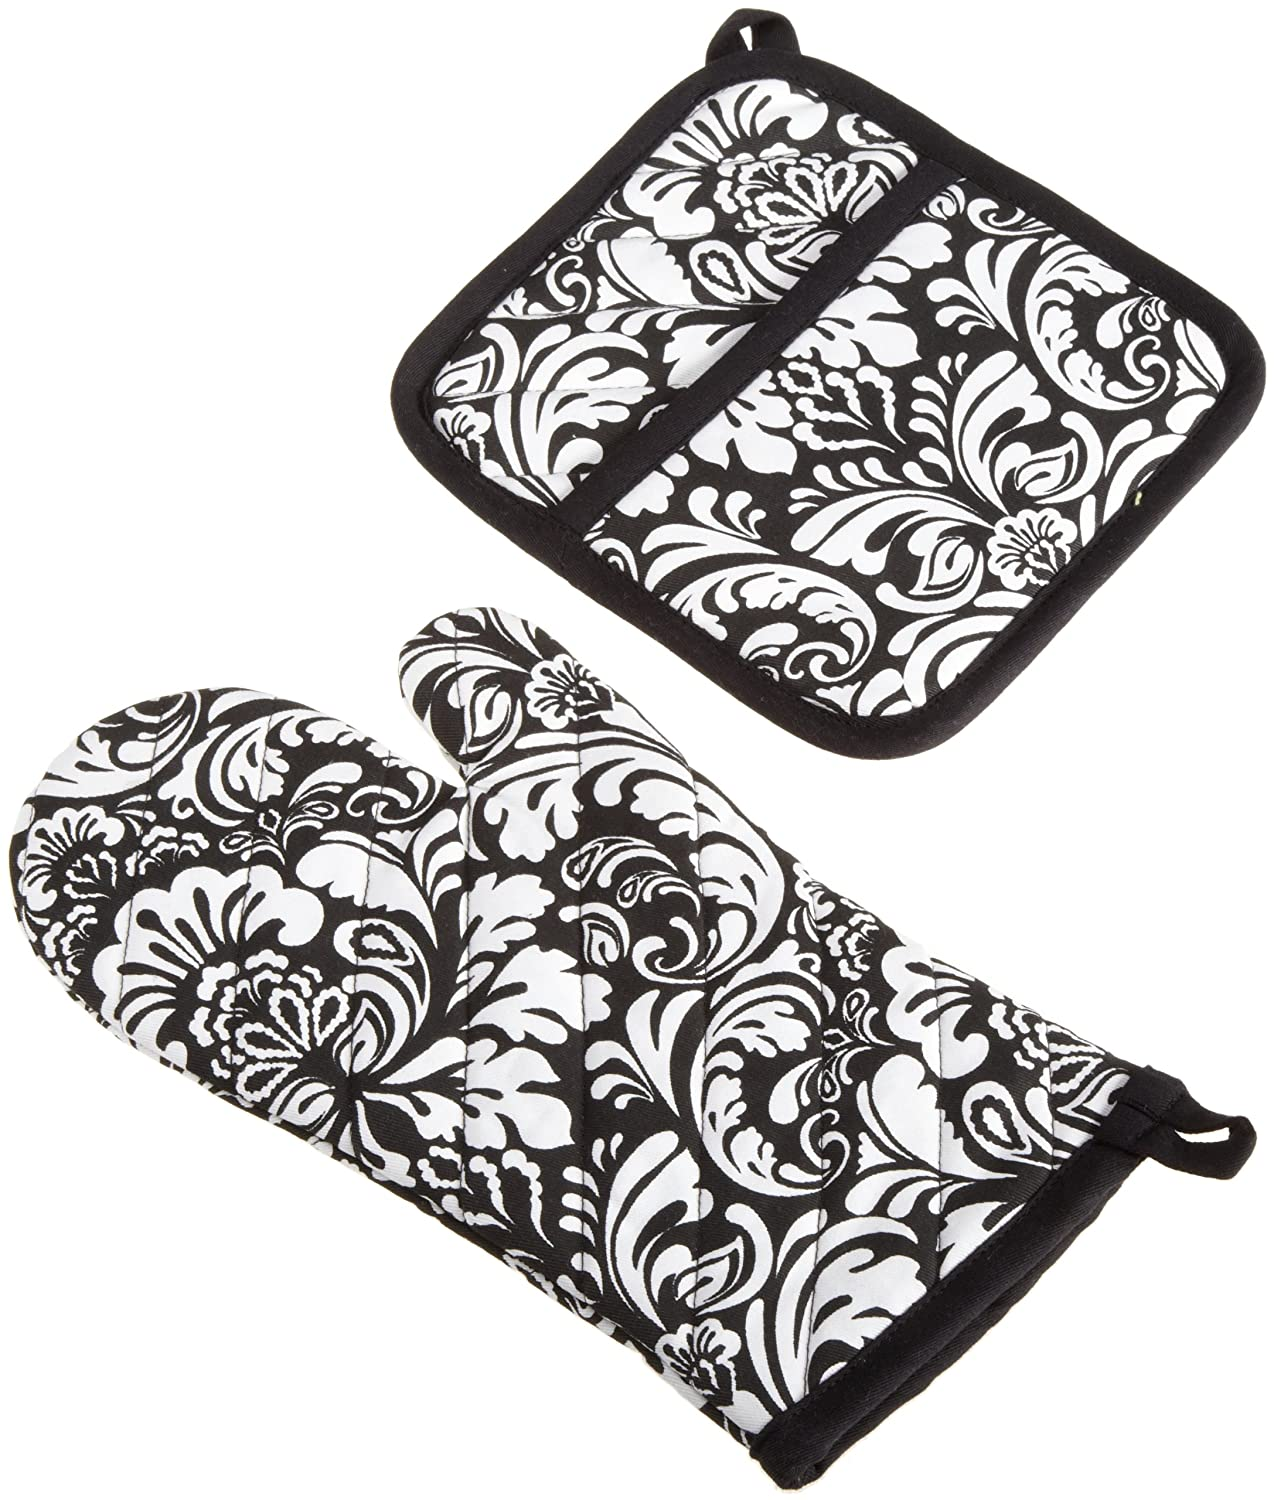 "DII Cotton Damask Oven Mitt 12 x 6.5"" and Pot Holder 8.5 x 8"" Kitchen Gift Set, Machine Washable and Heat Resistant for Cooking and Baking-Black"